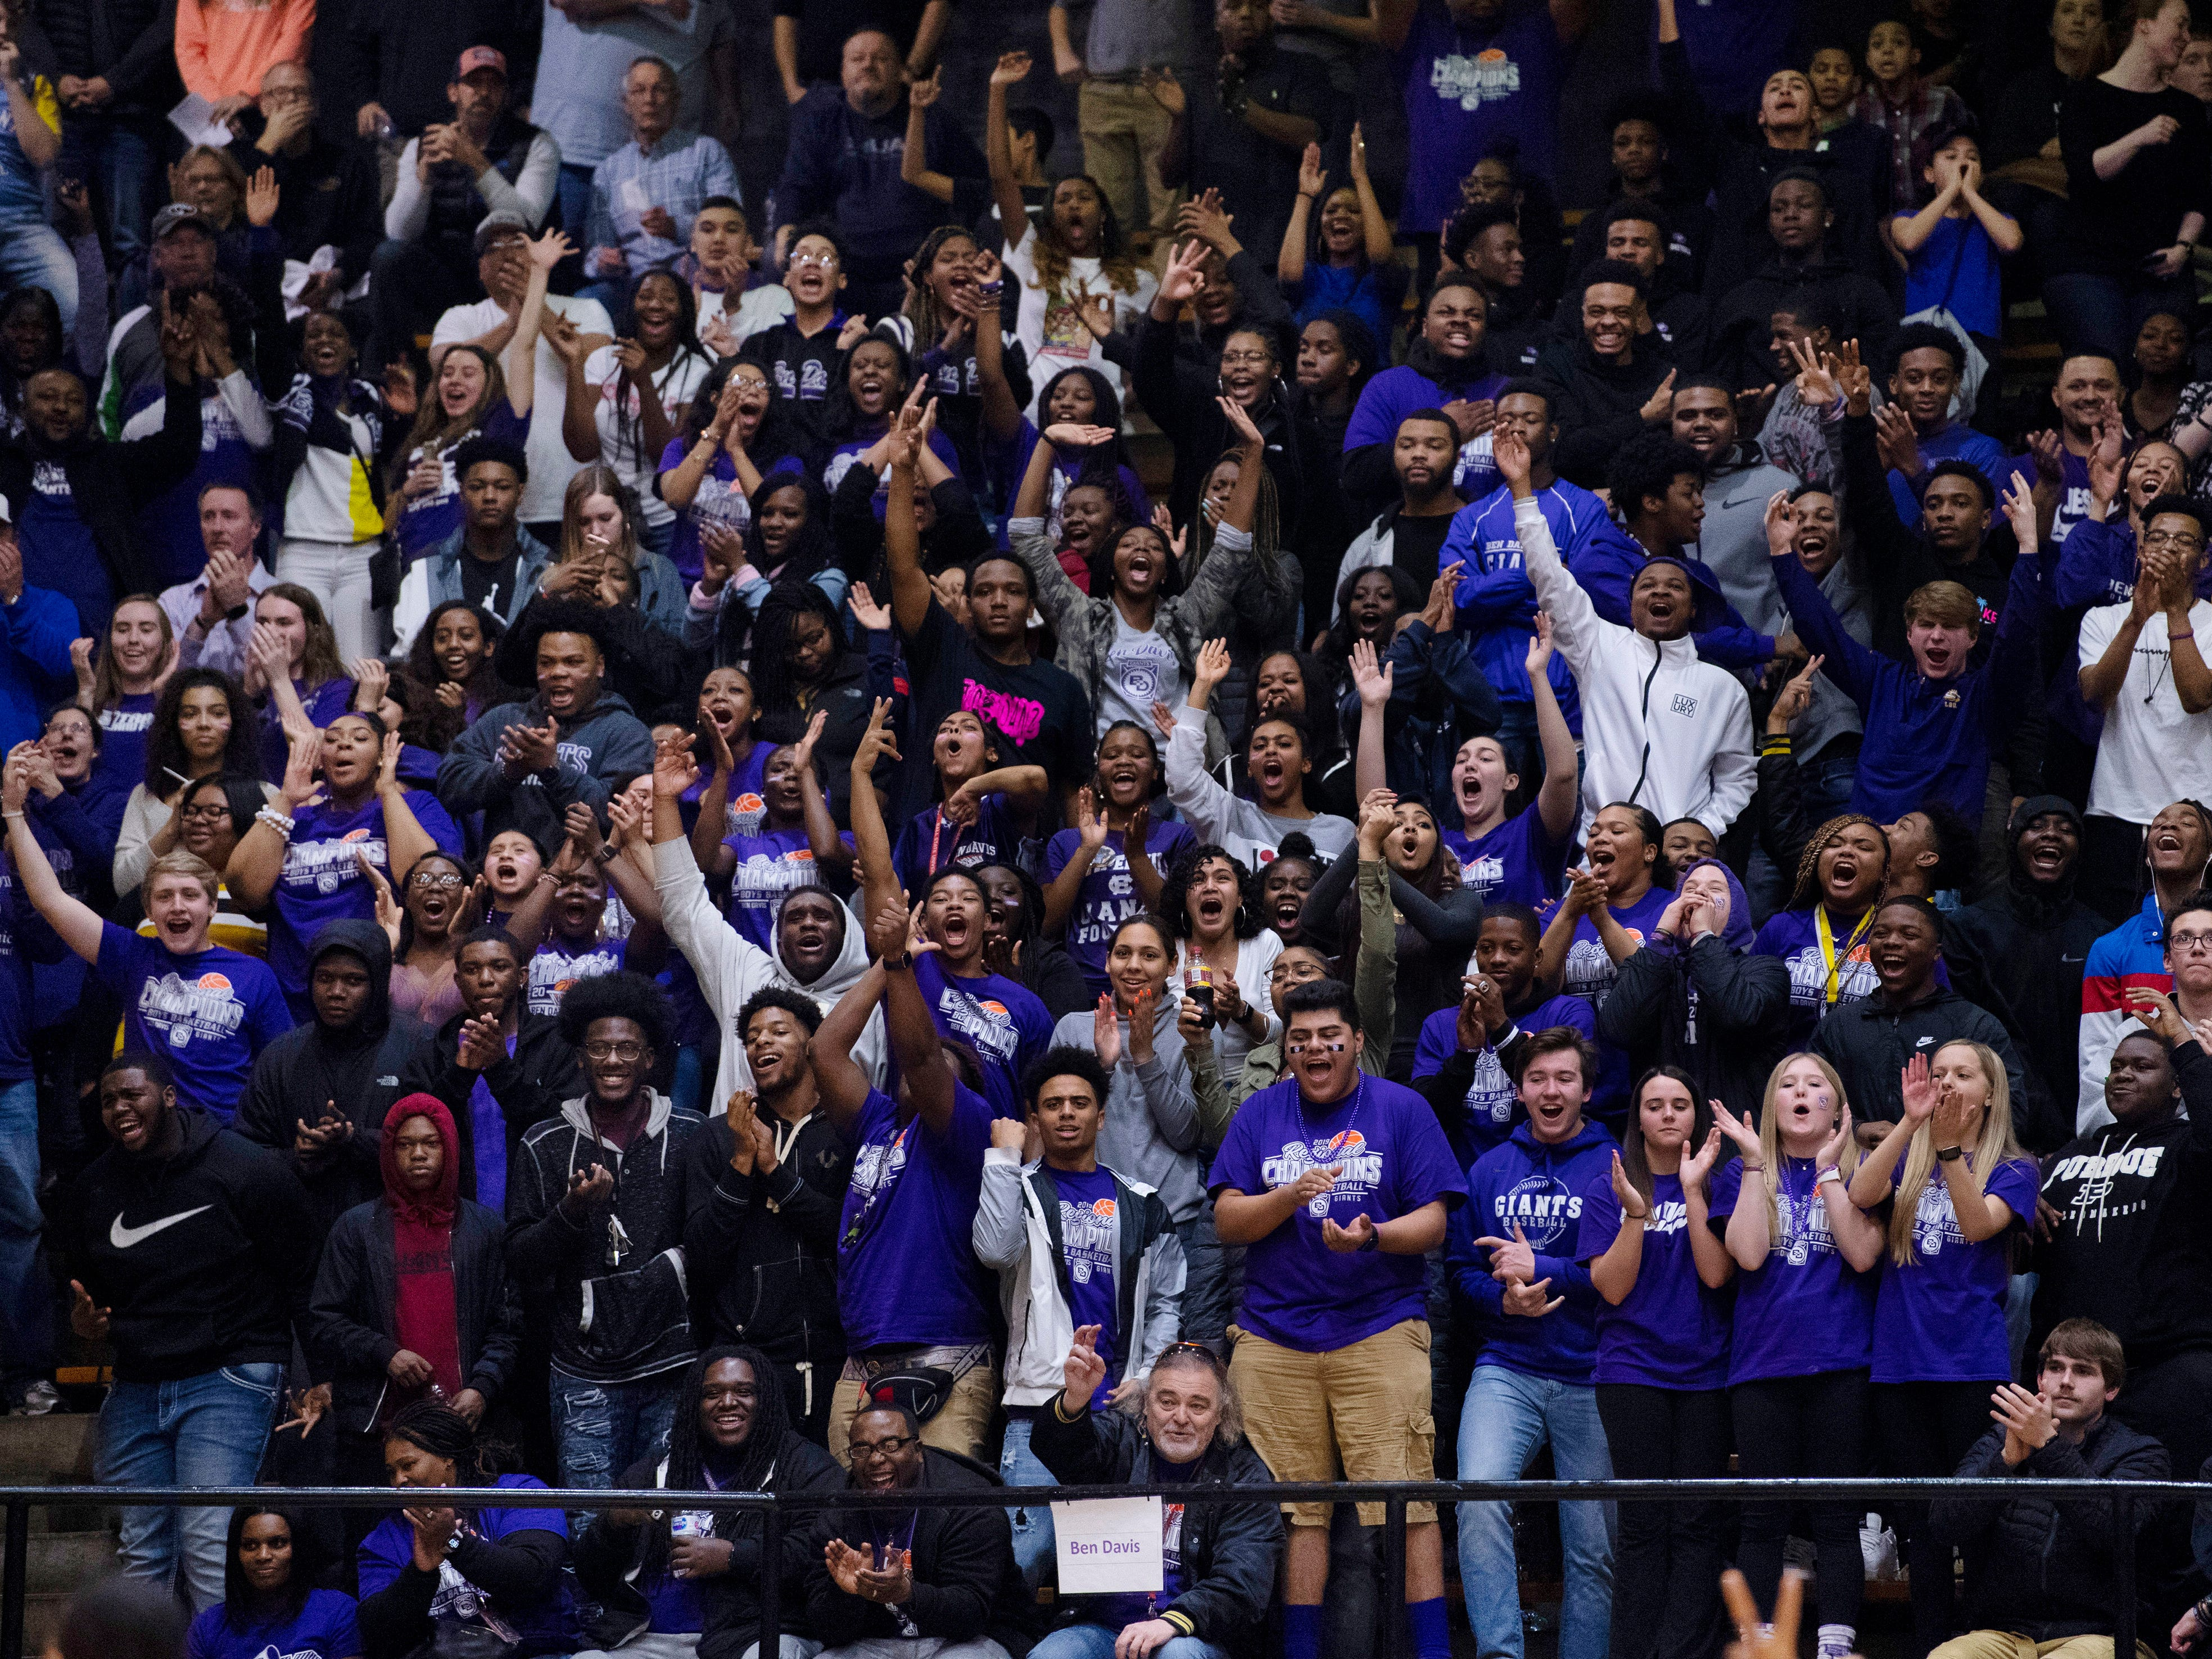 The Ben Davis fans erupt after going up by 15 points against Center Grove during the 4A Boys Indiana Semi-State Basketball Tournament at the Hatchet House in Washington, Ind., Saturday afternoon.